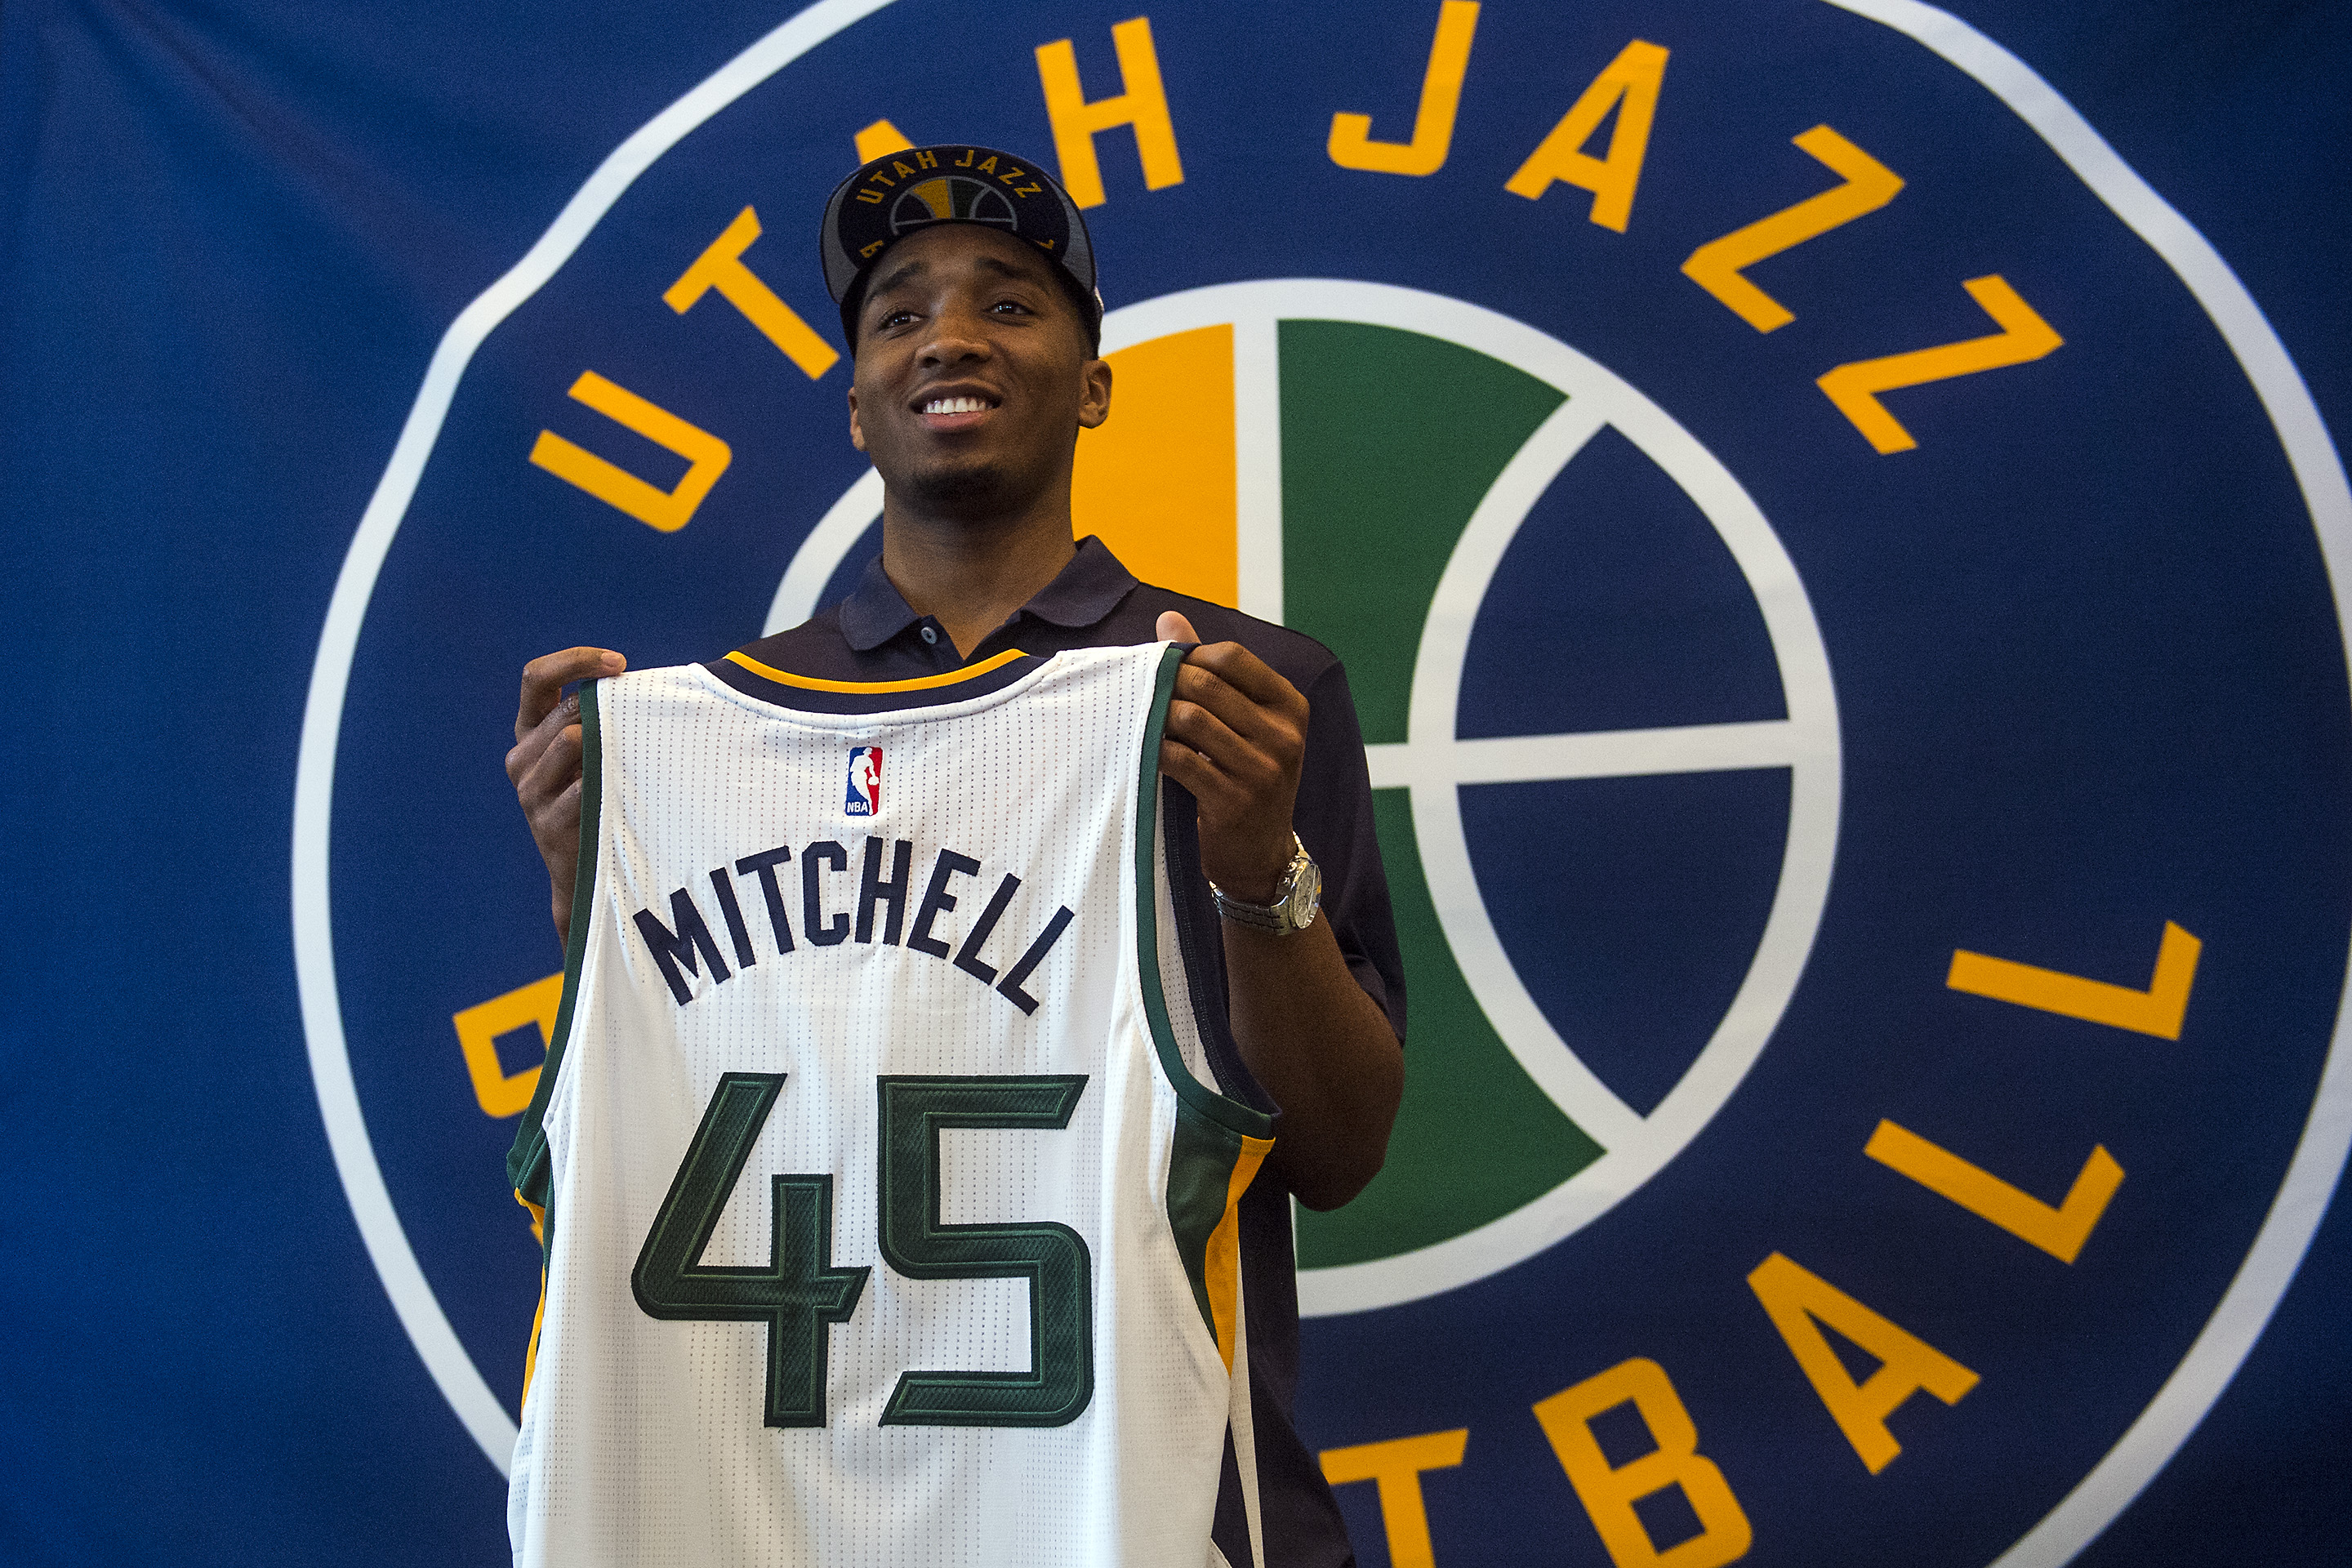 Donovan Mitchell's impact on and off the court makes him the Most Influential Person in Utah Sports